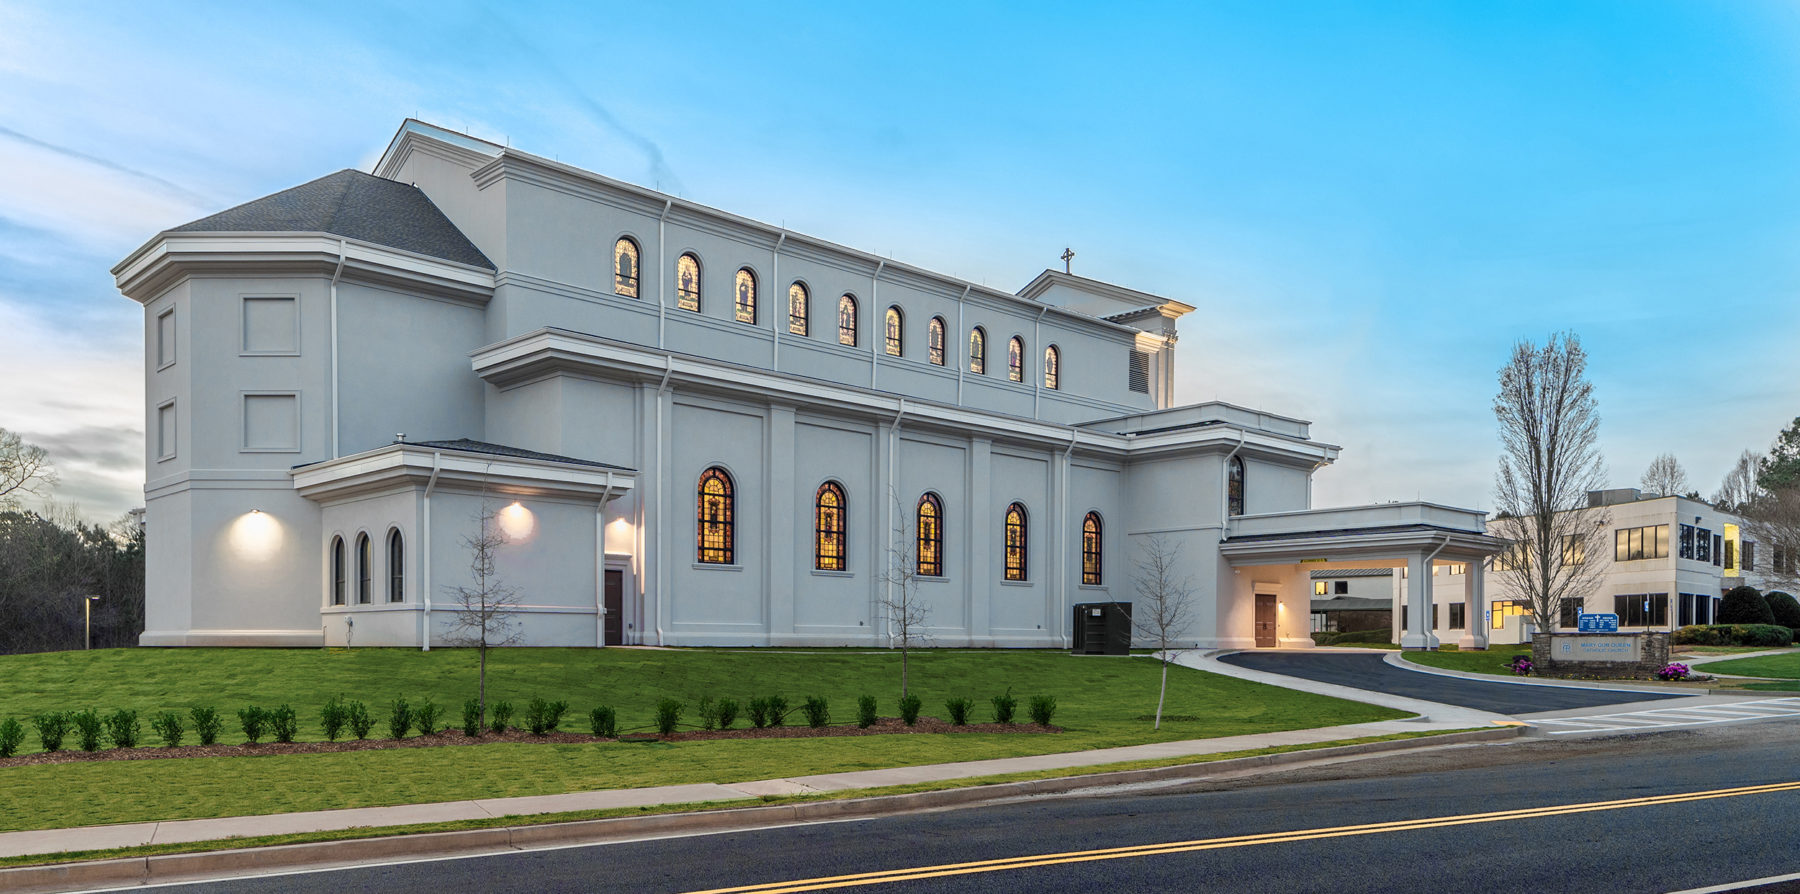 Church exterior classical basilica church with clerestory stained glass windows and porte cochere by Harrison Design